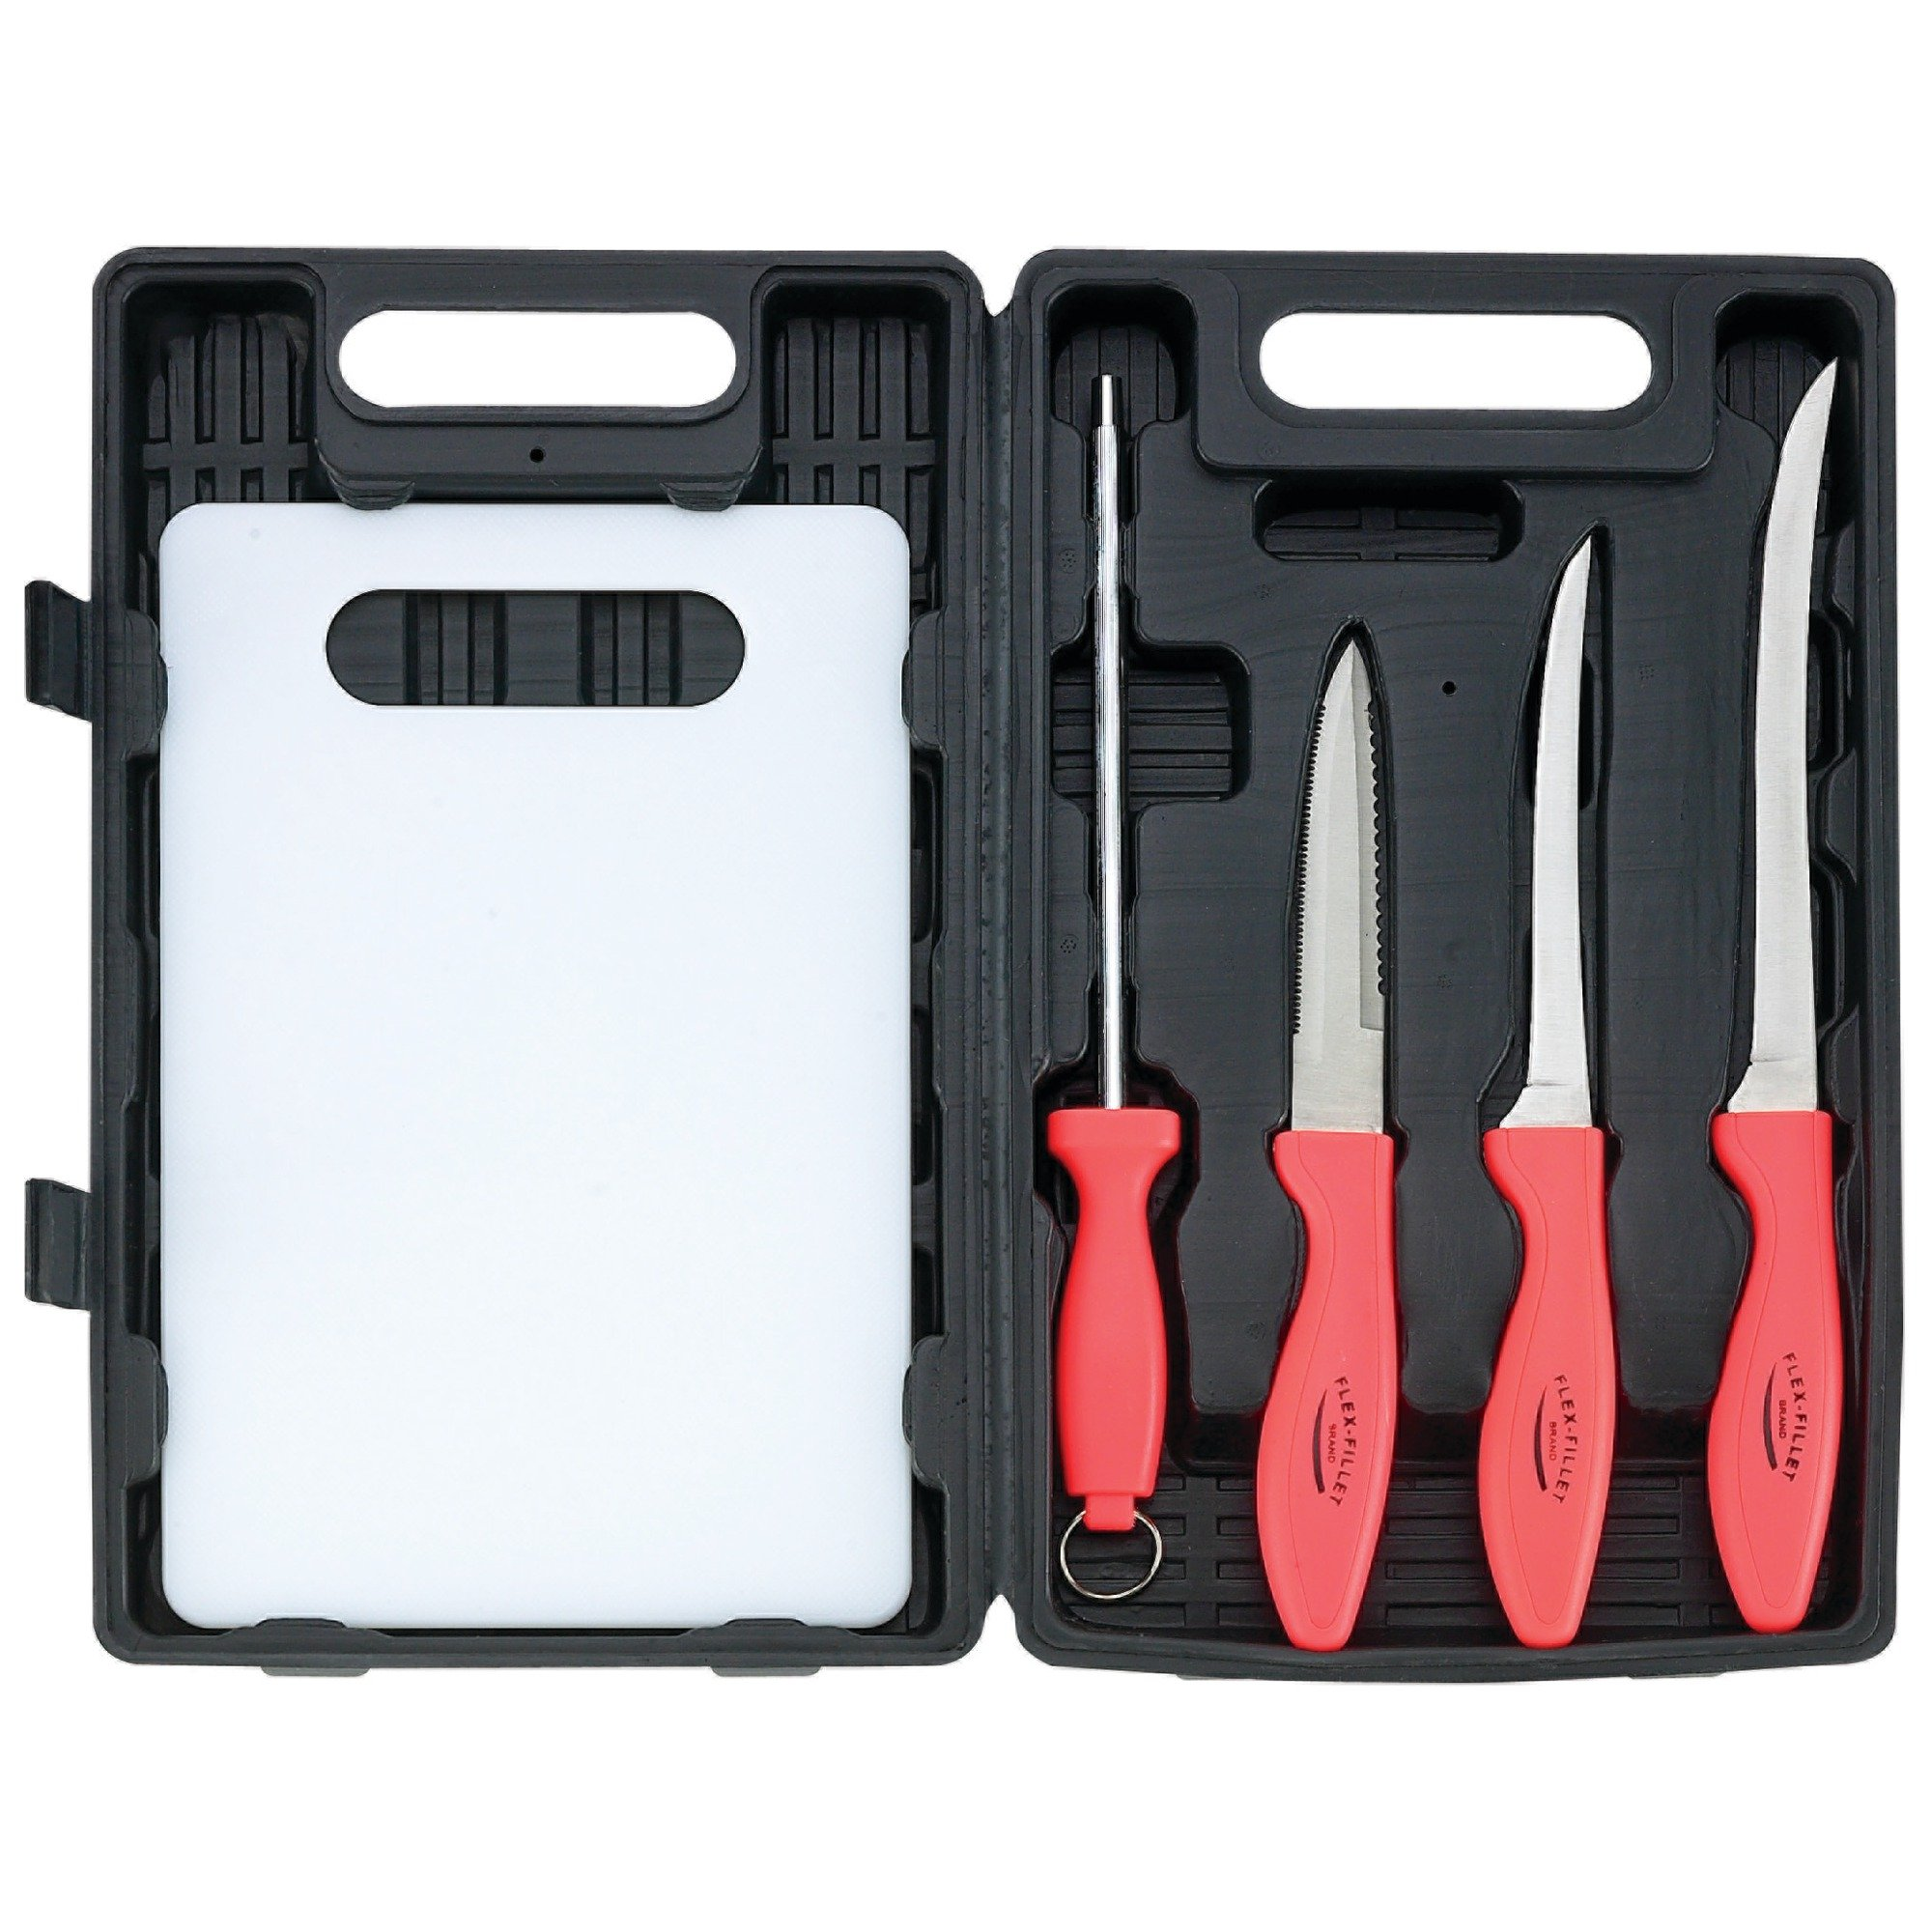 Flex Fillet 5pc Fishing Cutlery Set Fishing Knife Sharpening Steel Cutting Board Leymar Handles